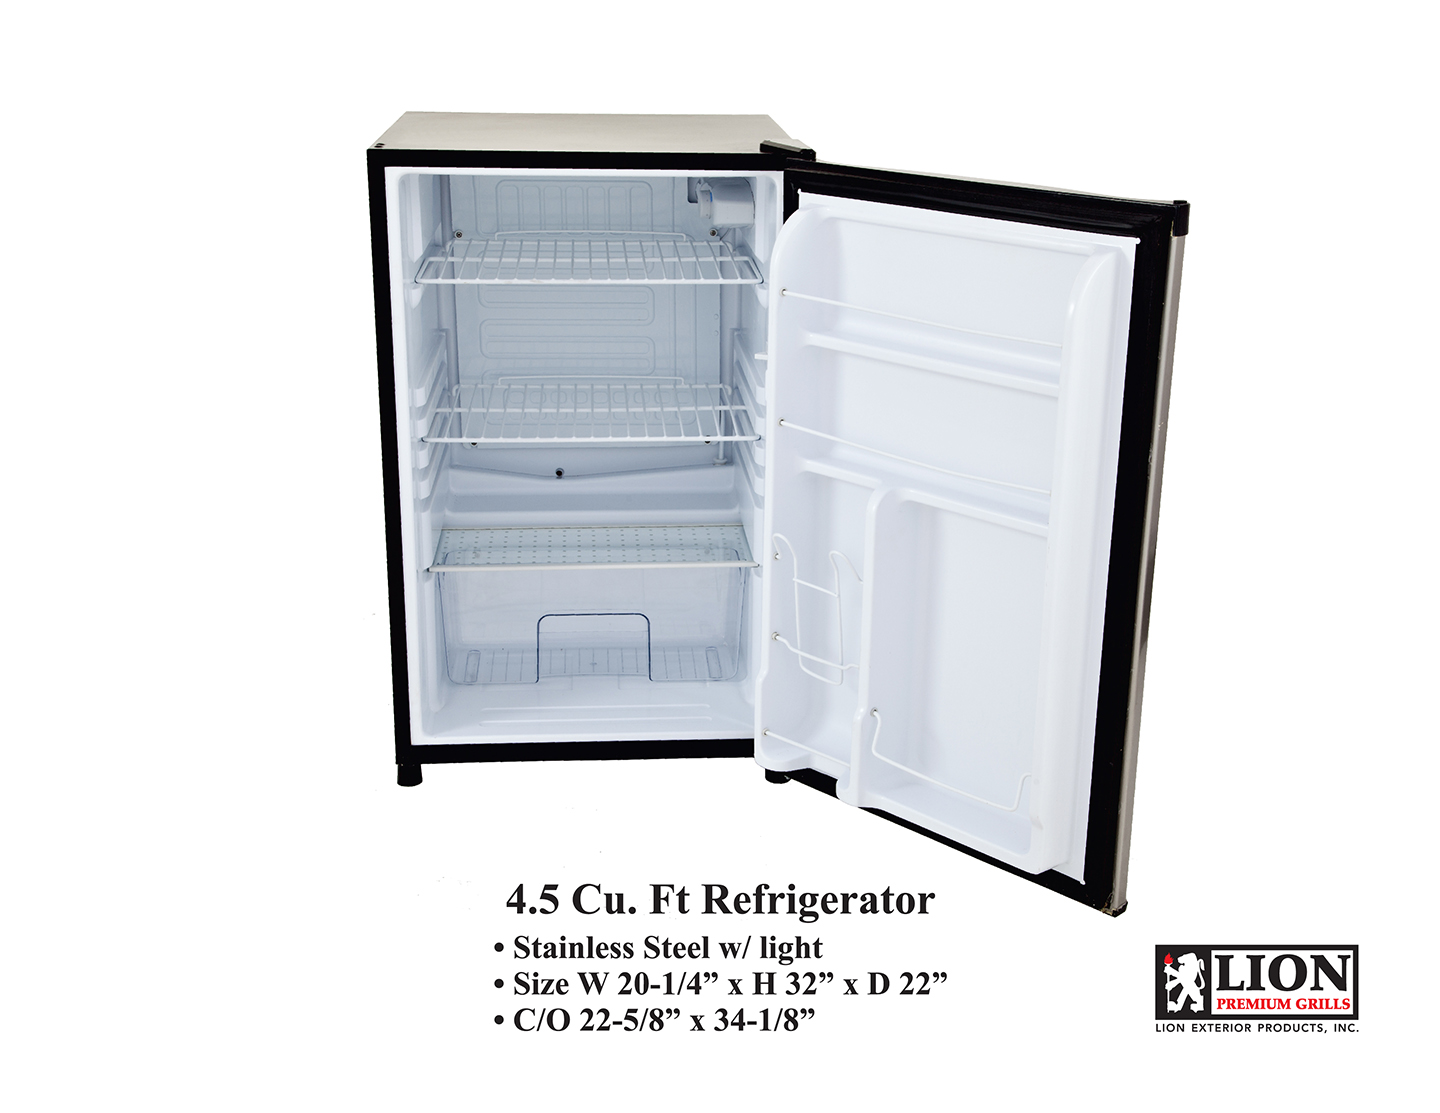 barbeque accessories palm desert modern outdoor spaces refrigerator